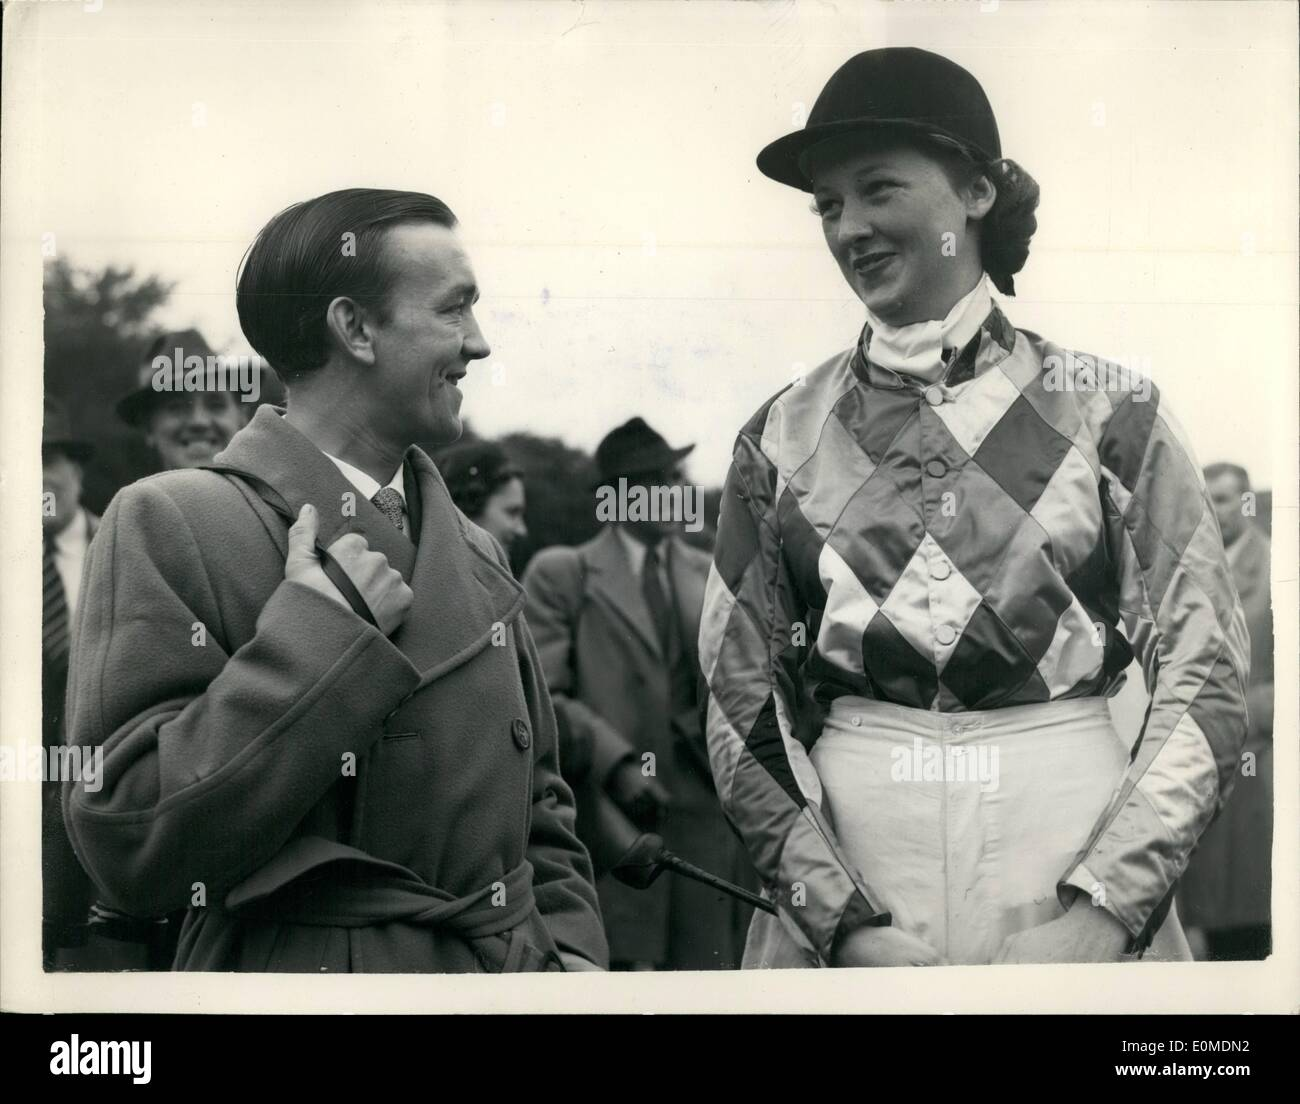 Oct. 14, 1954 - 14.10. 54 Newmarket Town Plate. Keystone Photo Shows: Jockey Nanny Mercer seen today with his fiancé, Stock Photo